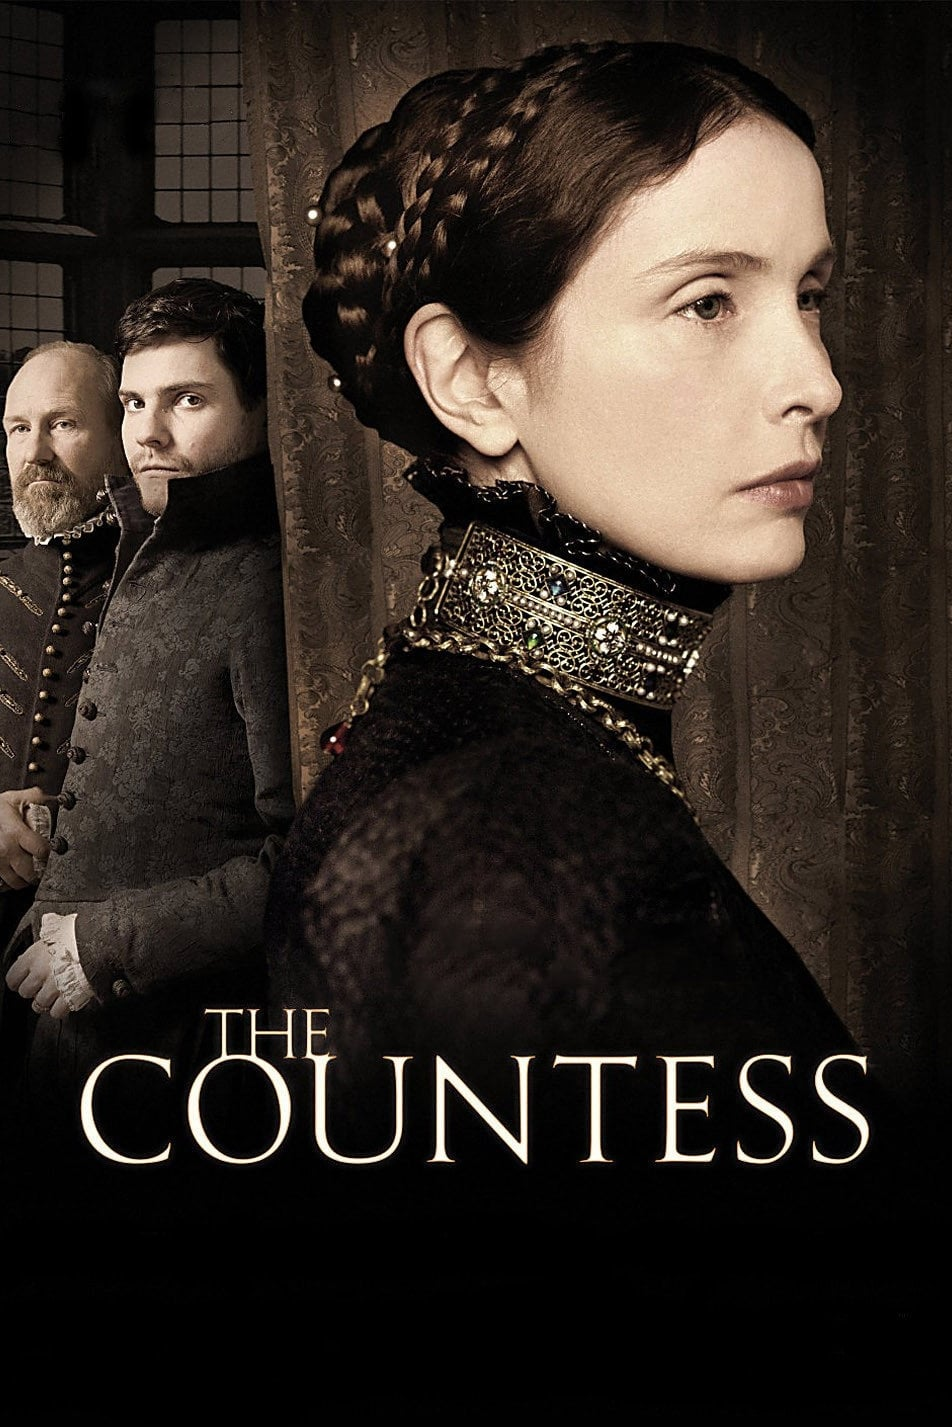 the film the countess deals with the corruption of a woman struggling with aging Investopedia editing dissertation www investopedia com/ the film the countess deals with the corruption of a woman struggling with aging /10/introduction-to.